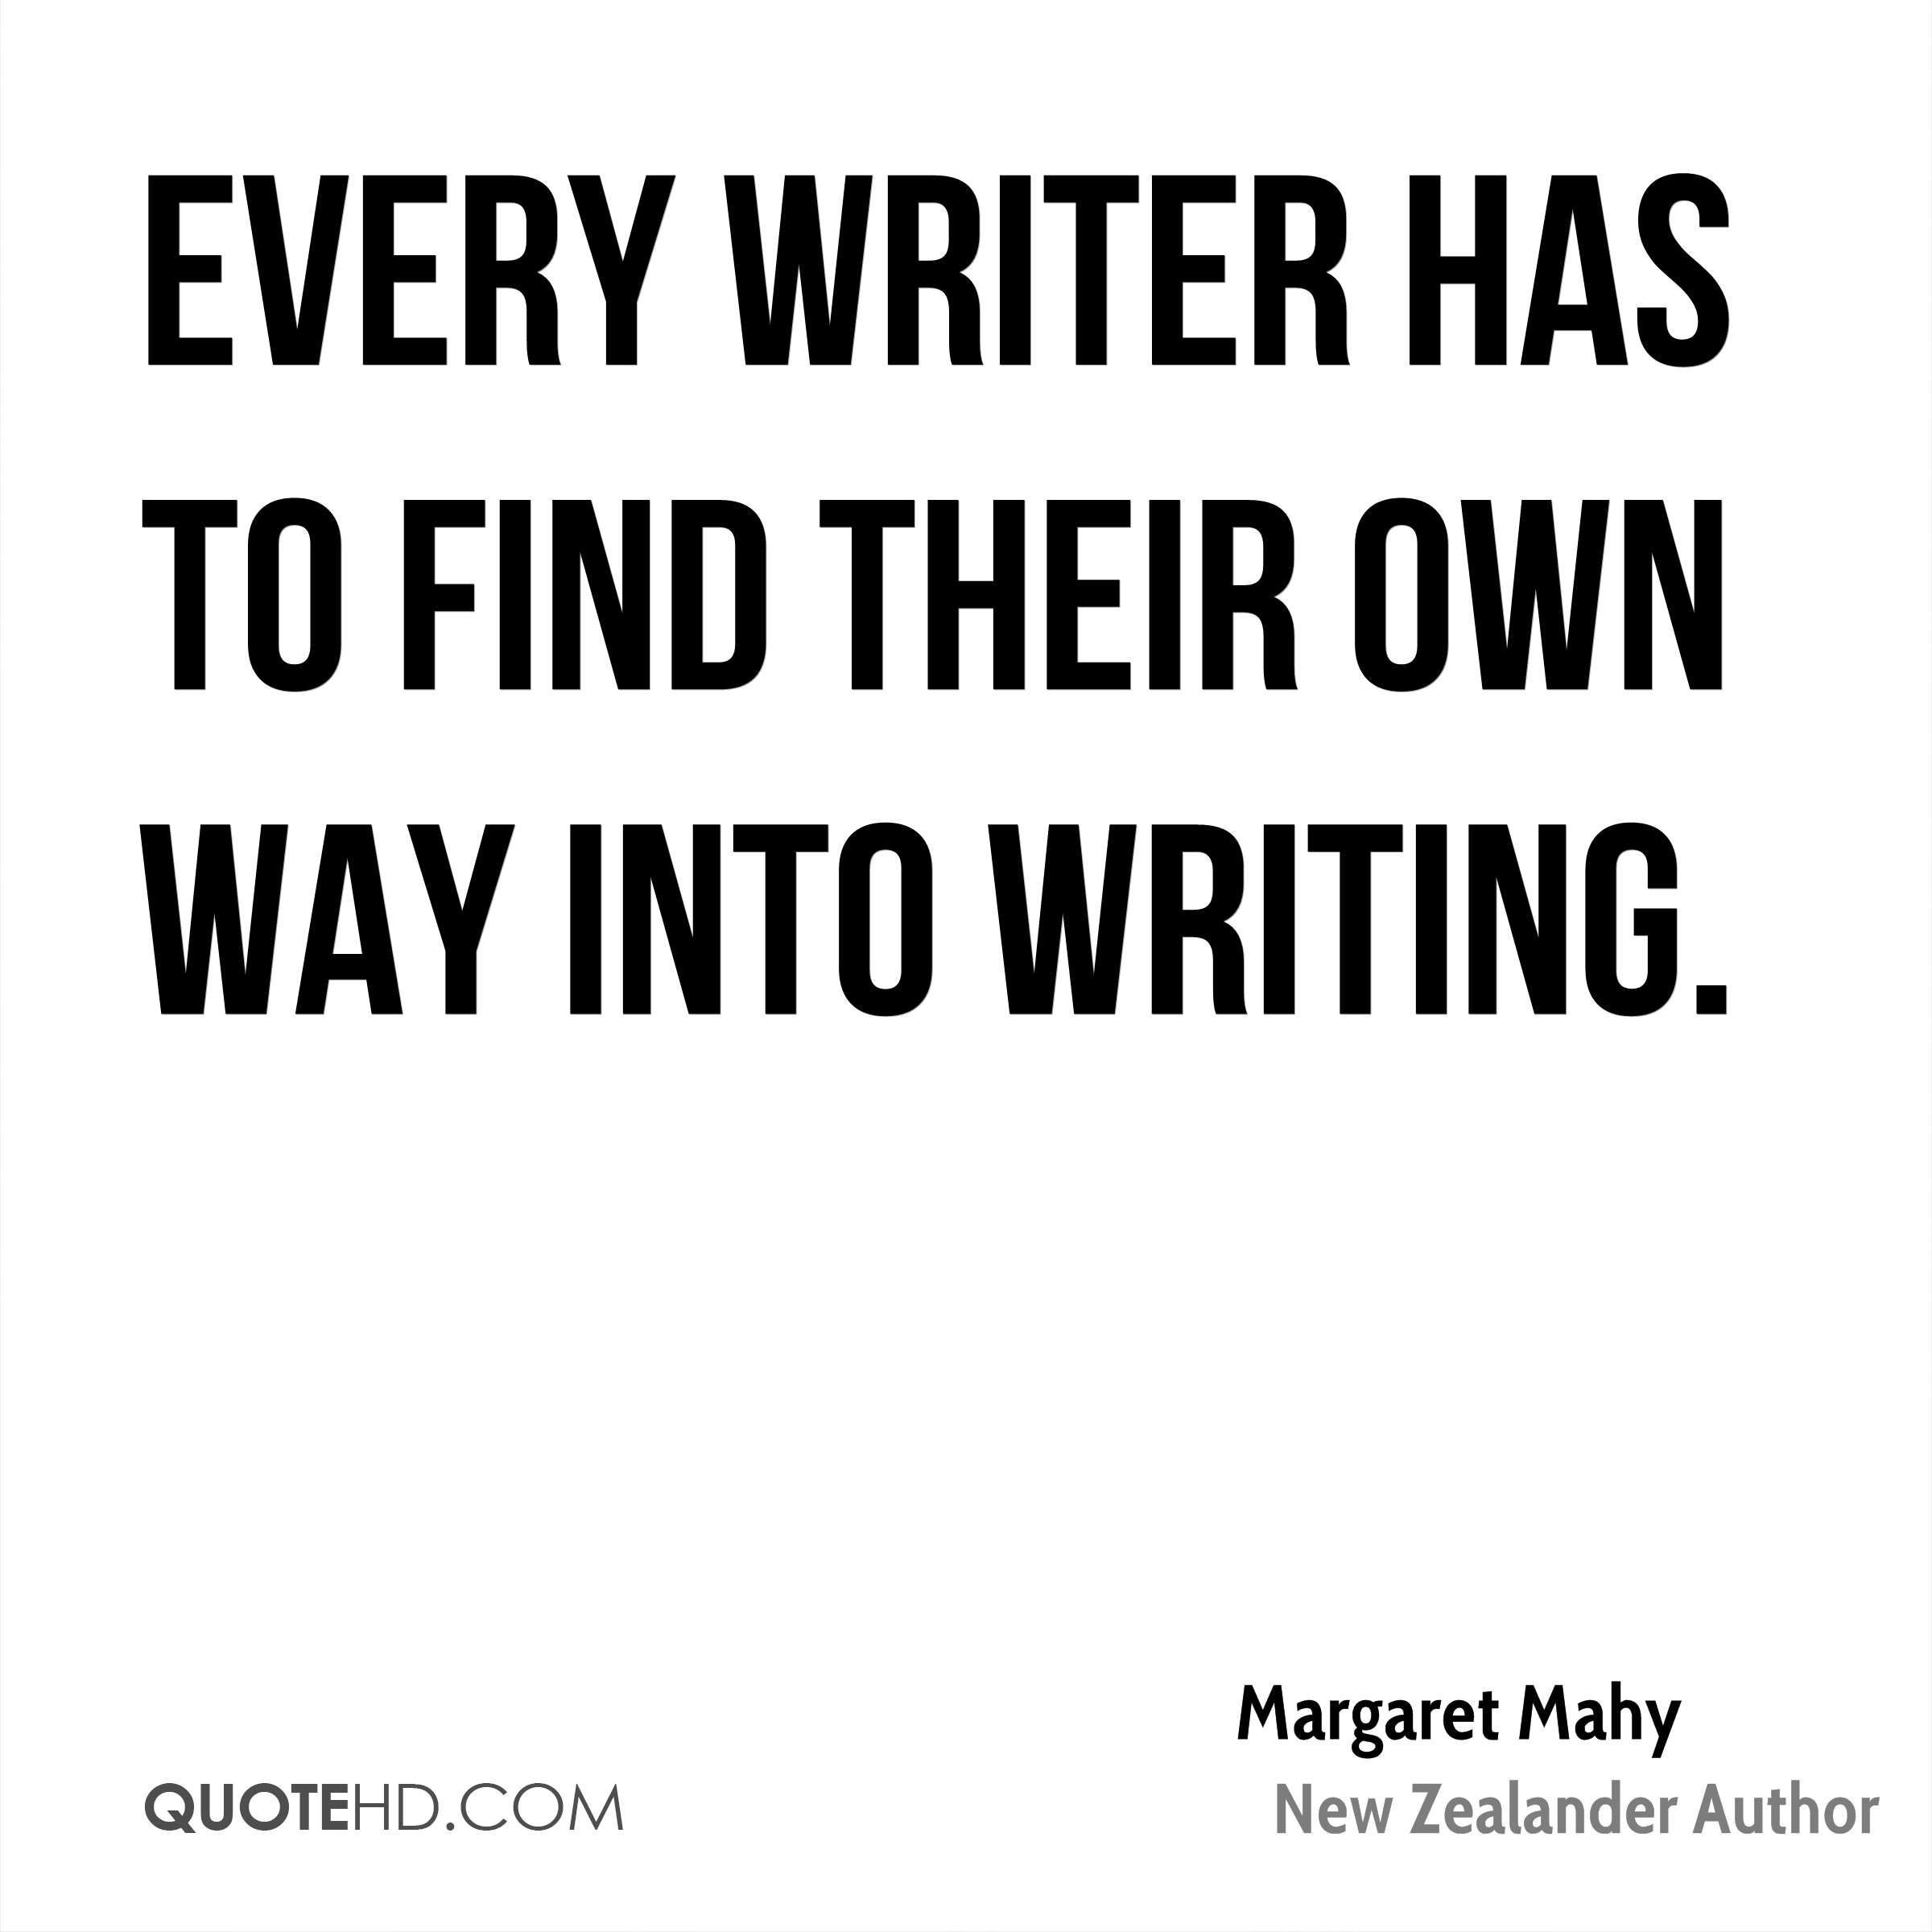 Every writer has to find their own way into writing.